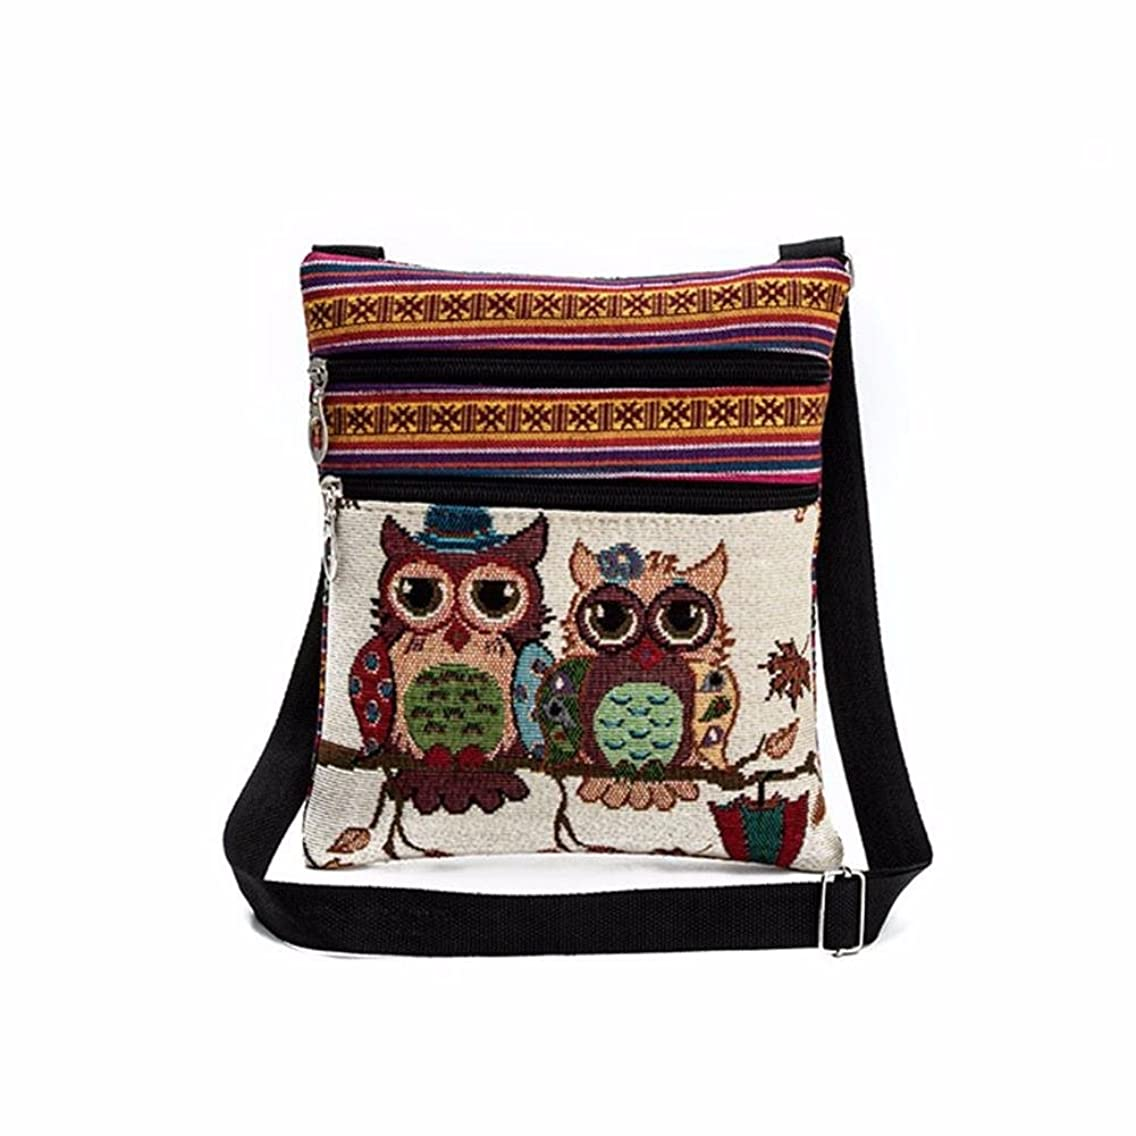 Alixyz Clearance Women Small Bag Embroidered Owl Tote Bags Shoulder Bag Handbags